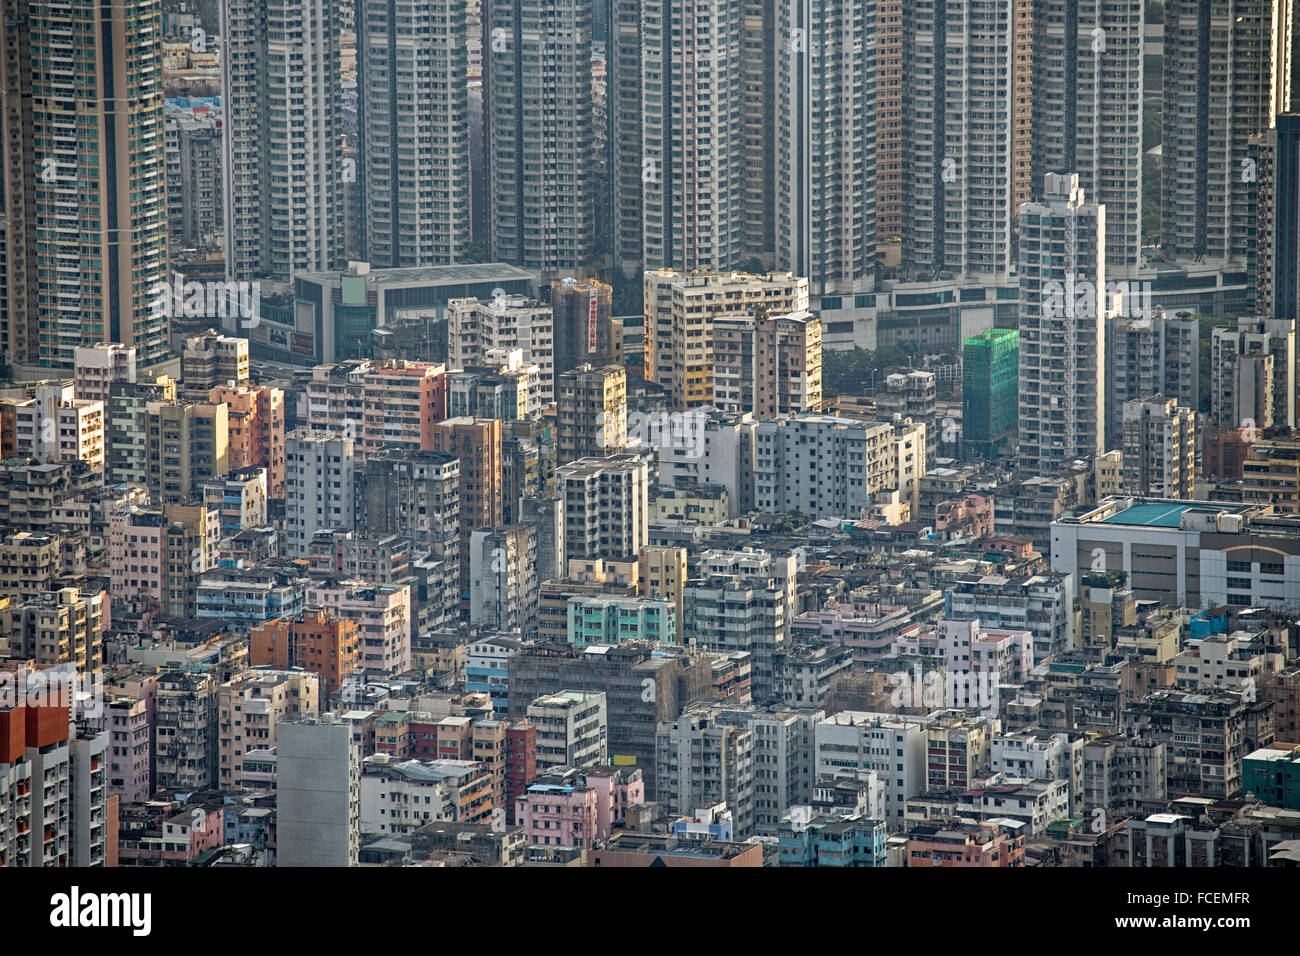 Hong Kong cityscape, crowd buildings at day Stock Photo